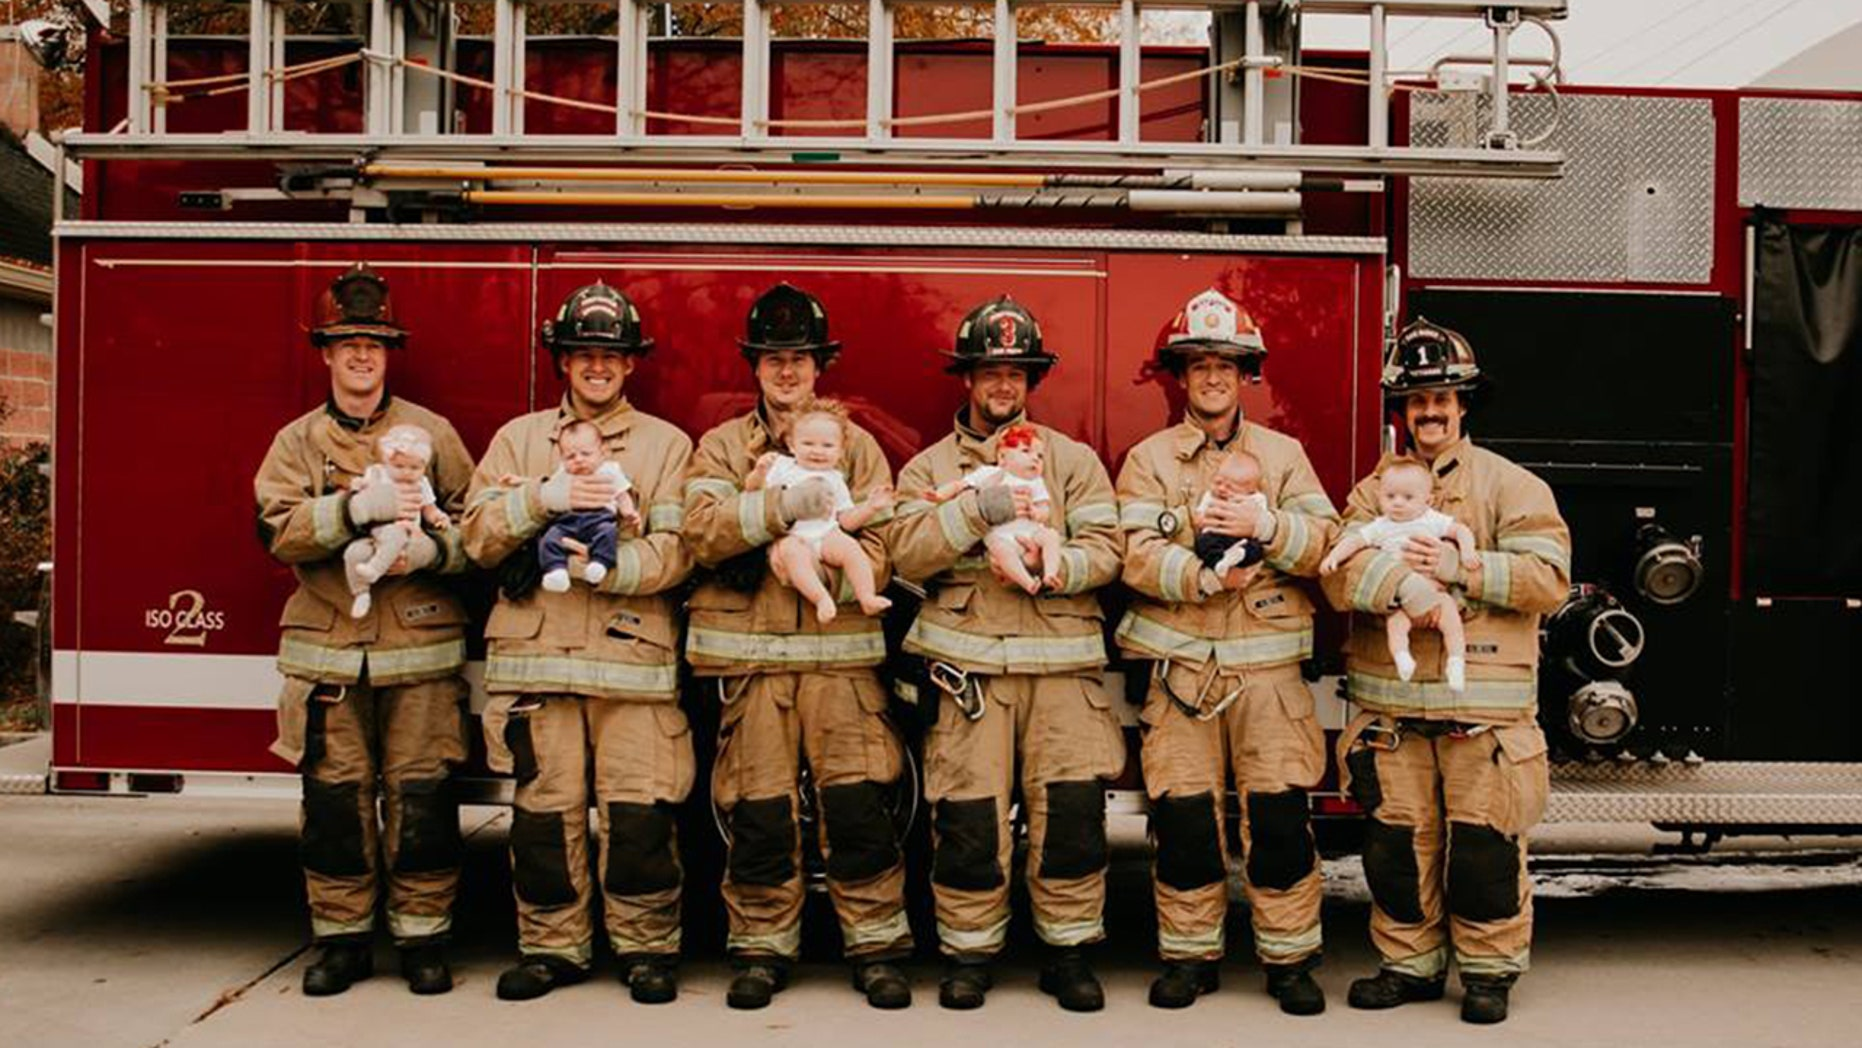 A fire department in Tennessee welcomed six new members in a nine-month period.